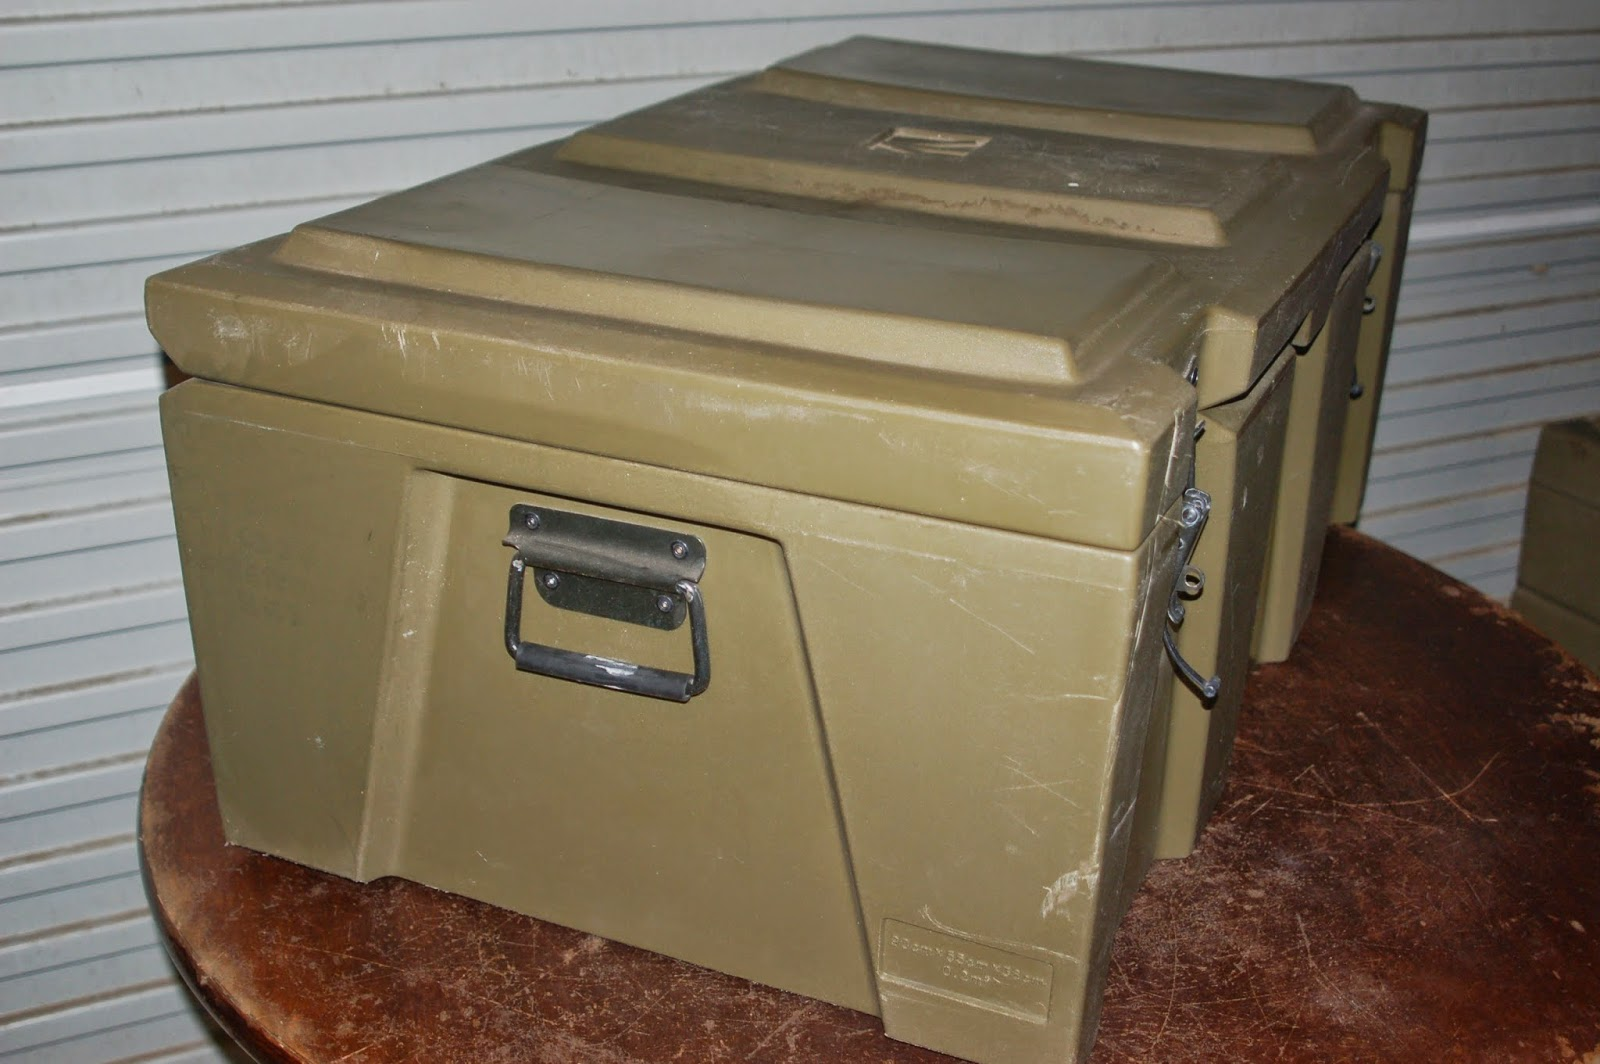 The lid is hinged on one side with heavy duty clips to seal the box. & SurQuip : Space Case. Ex Army. Military surplus. Spacecase Trunk ...